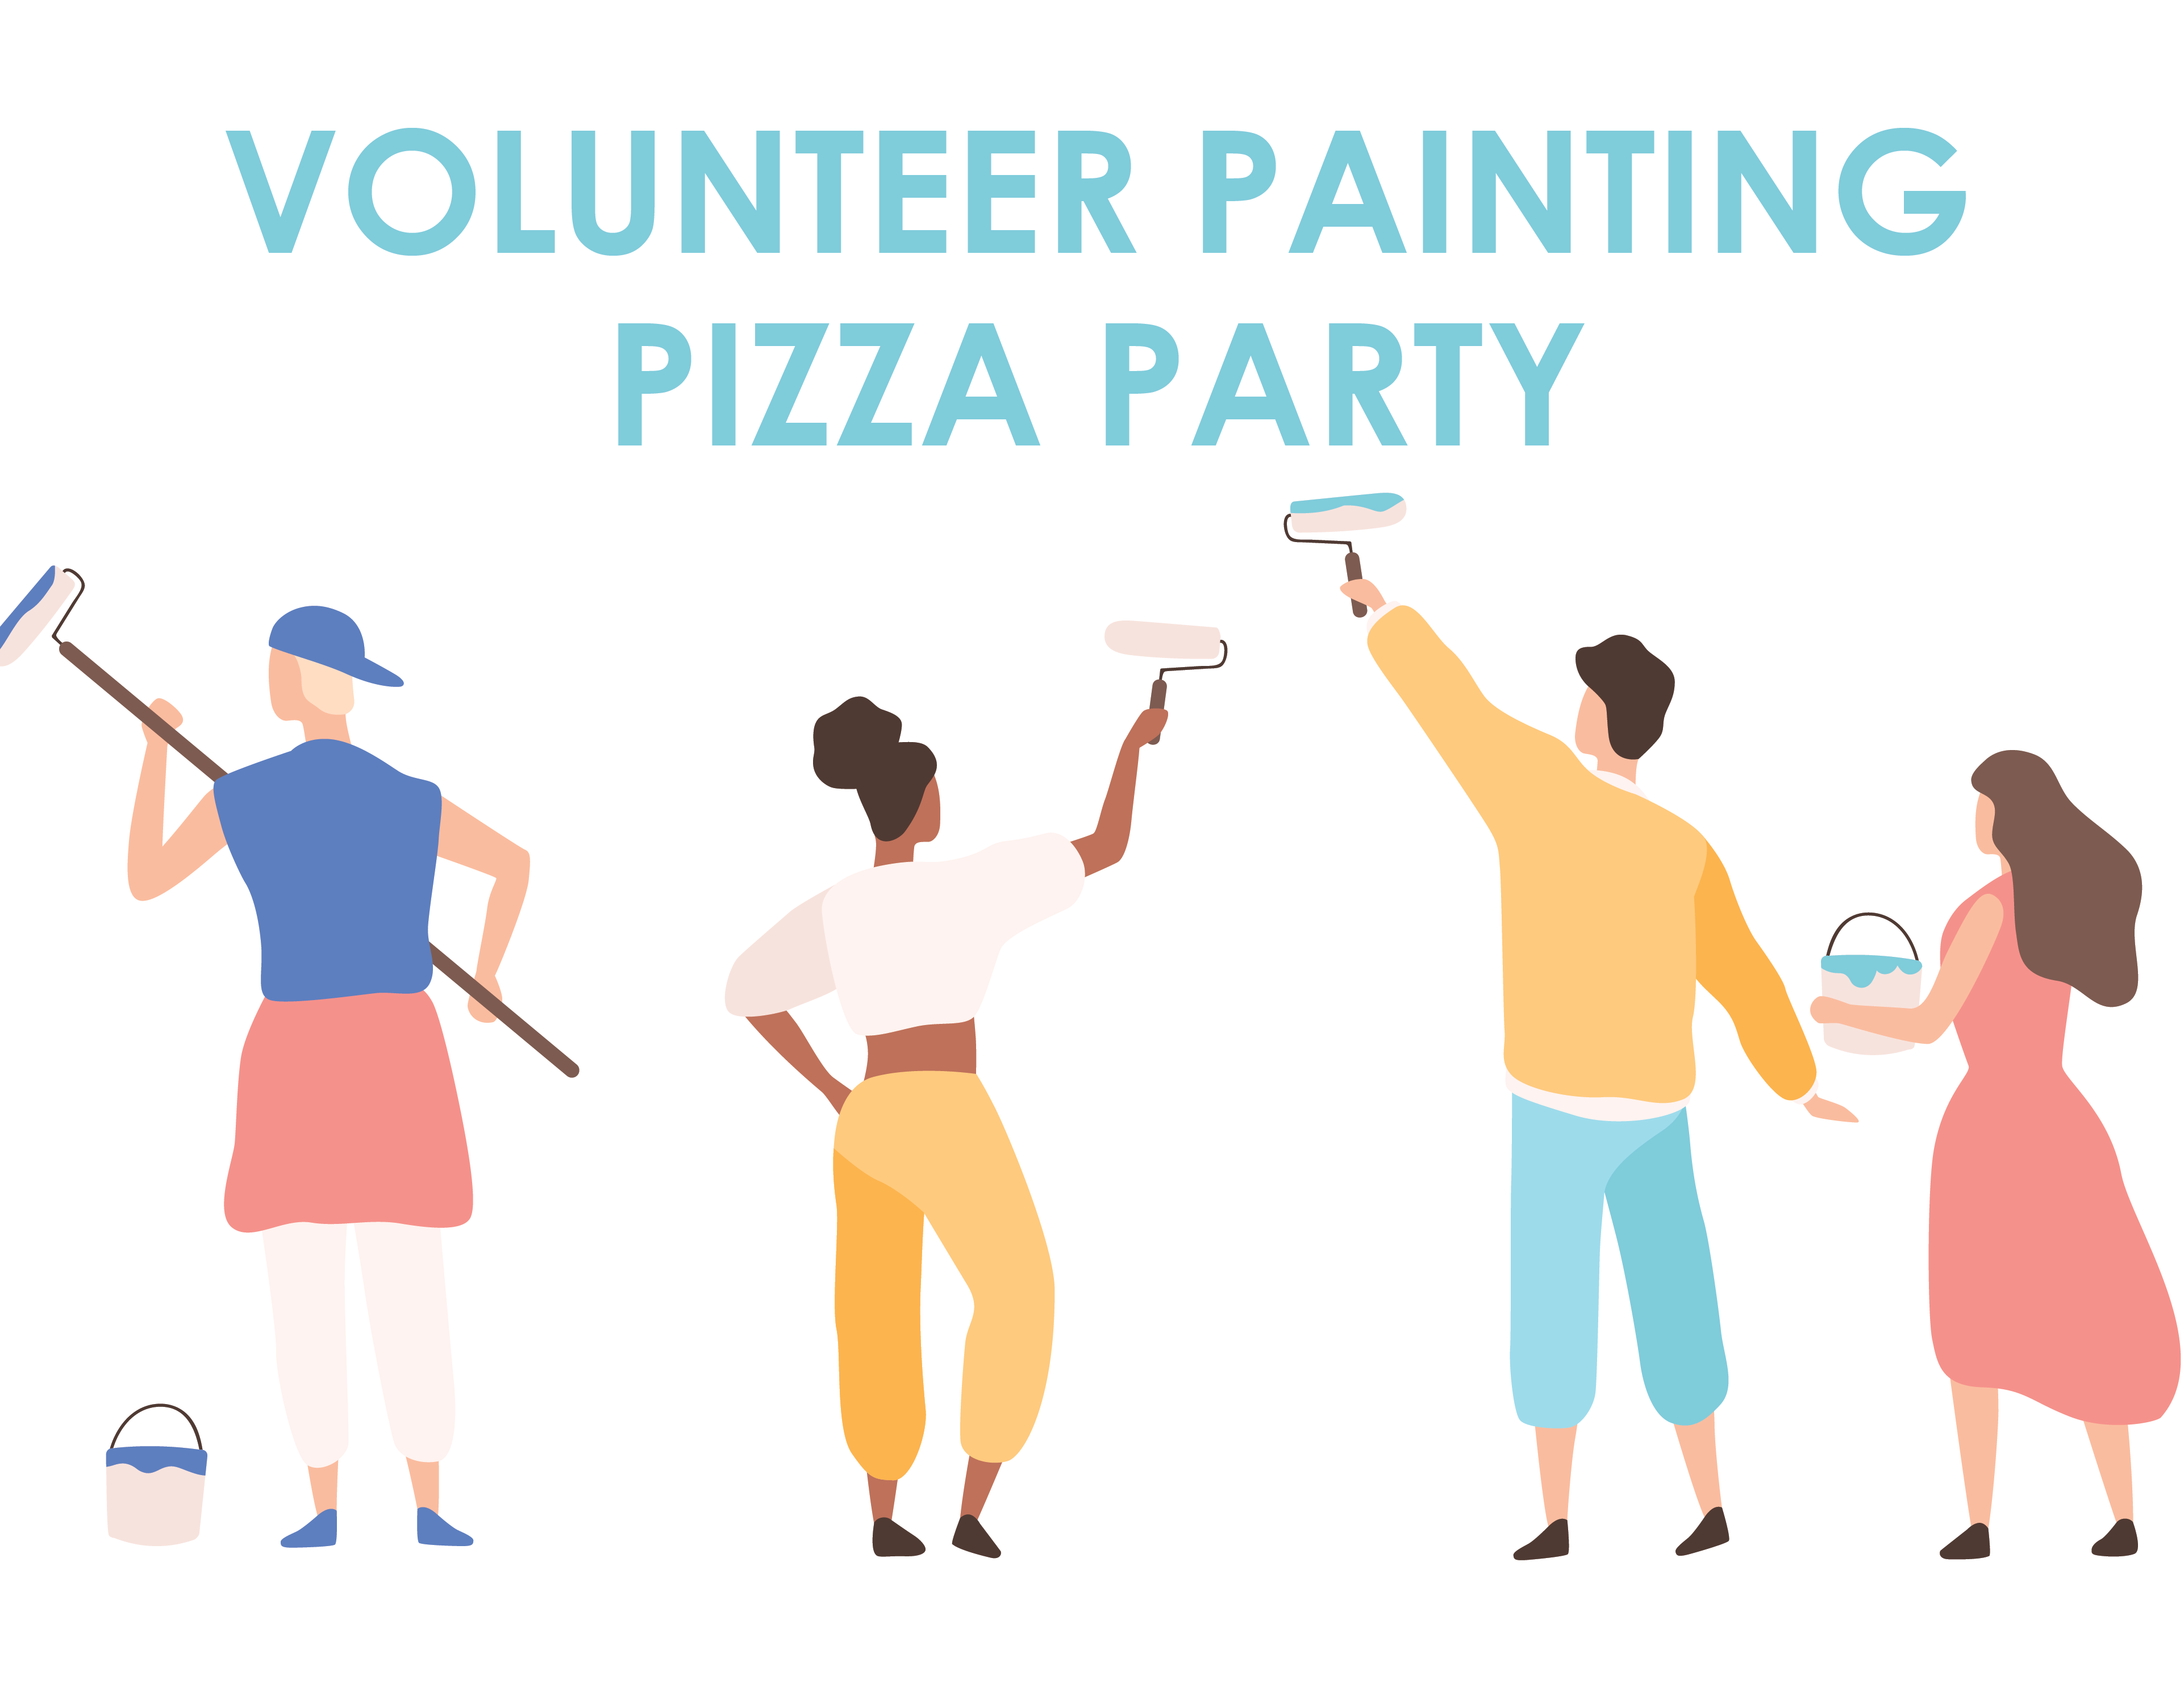 Volunteer Painting Pizza Party